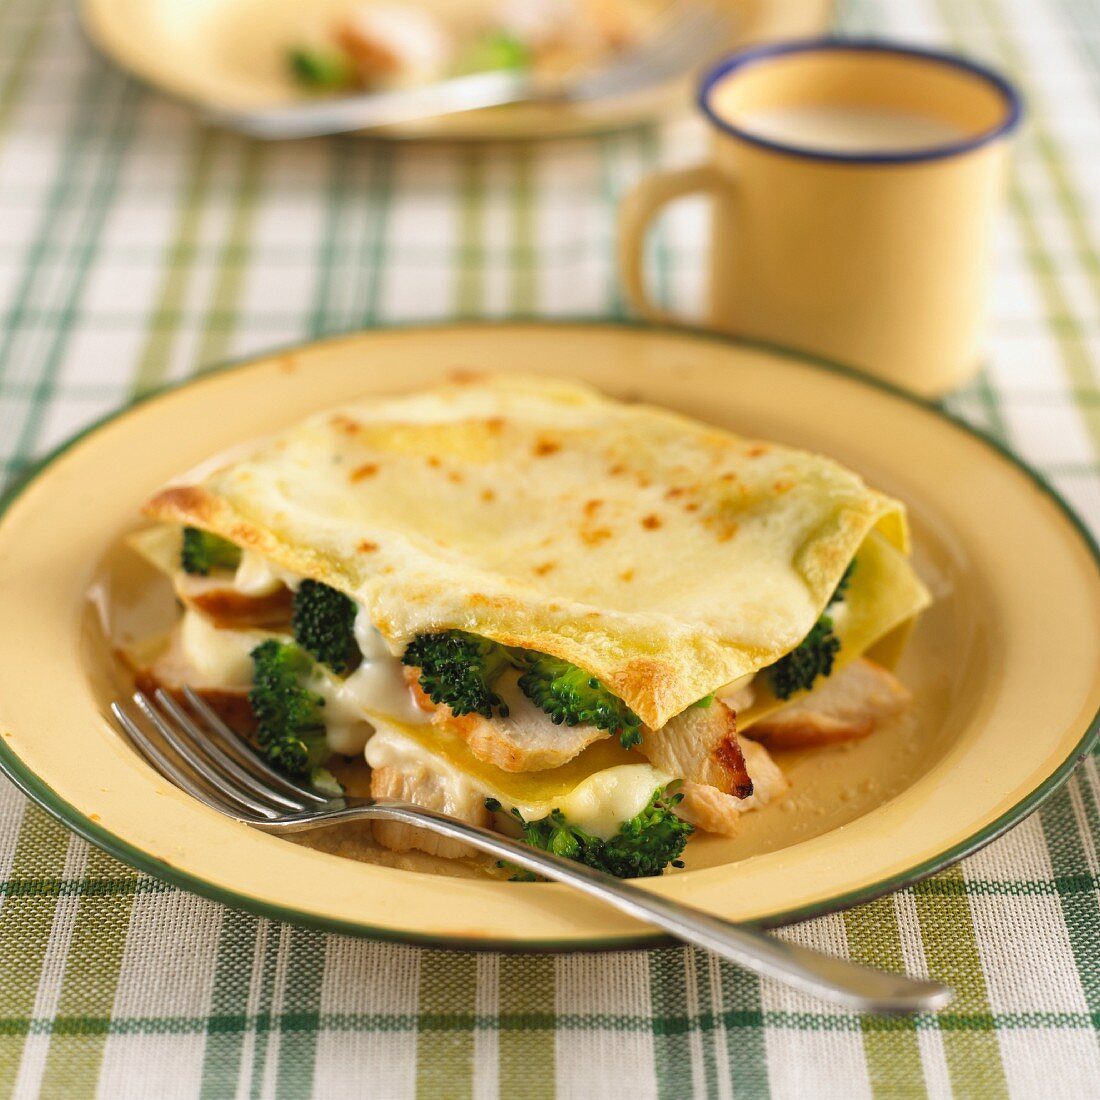 Lasagne made with chicken and broccoli